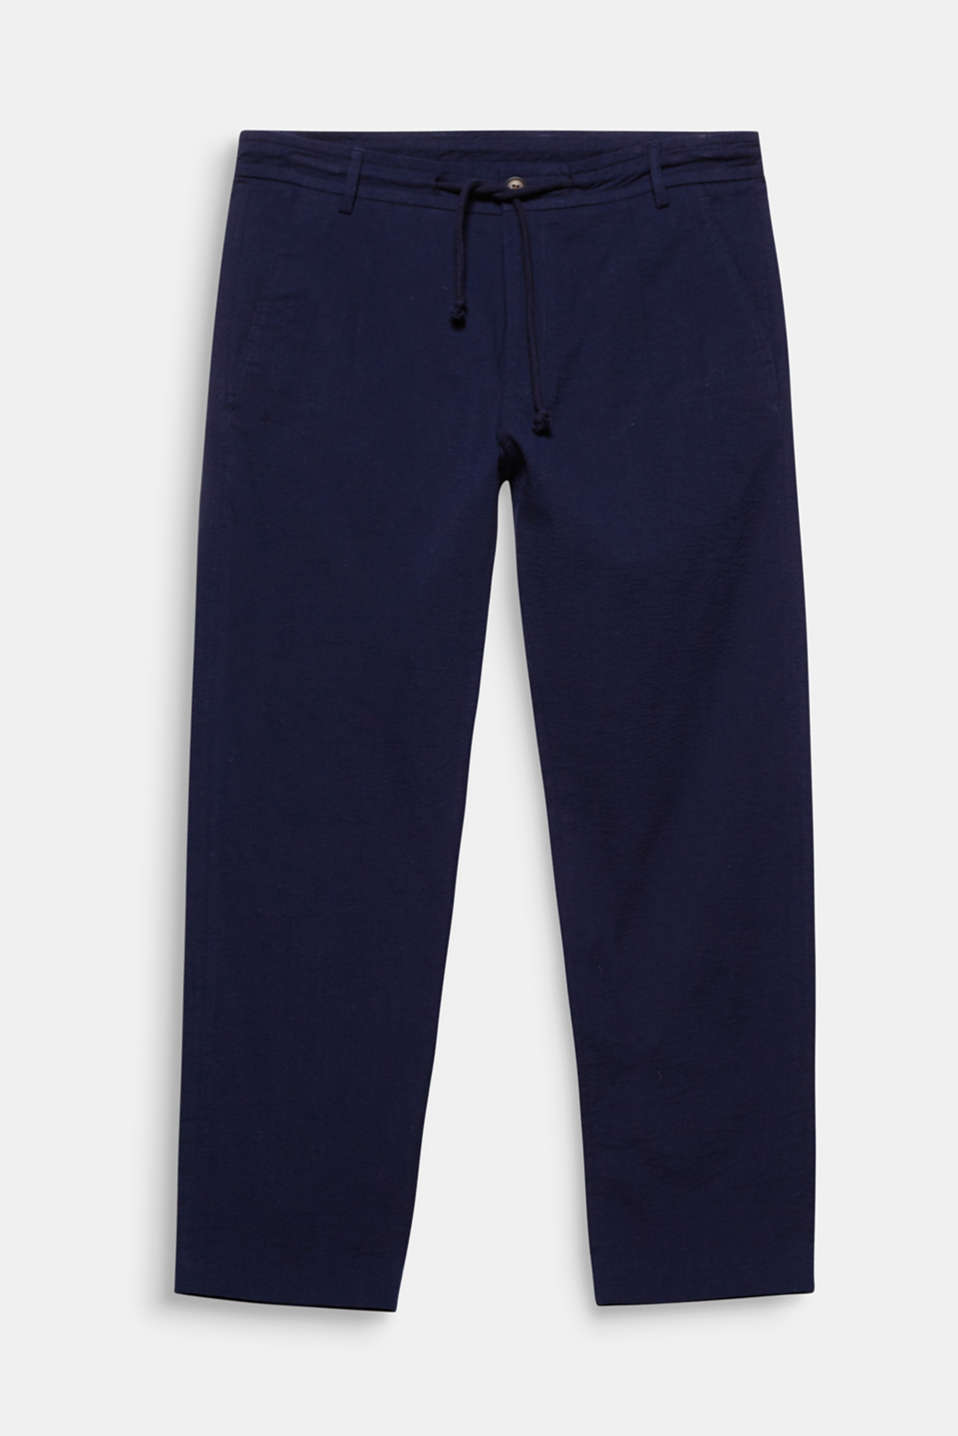 Dress code: smart casual. The casual drawstring waist and laid-back seersucker fabric give these trousers an elegant and casual look at the same time.